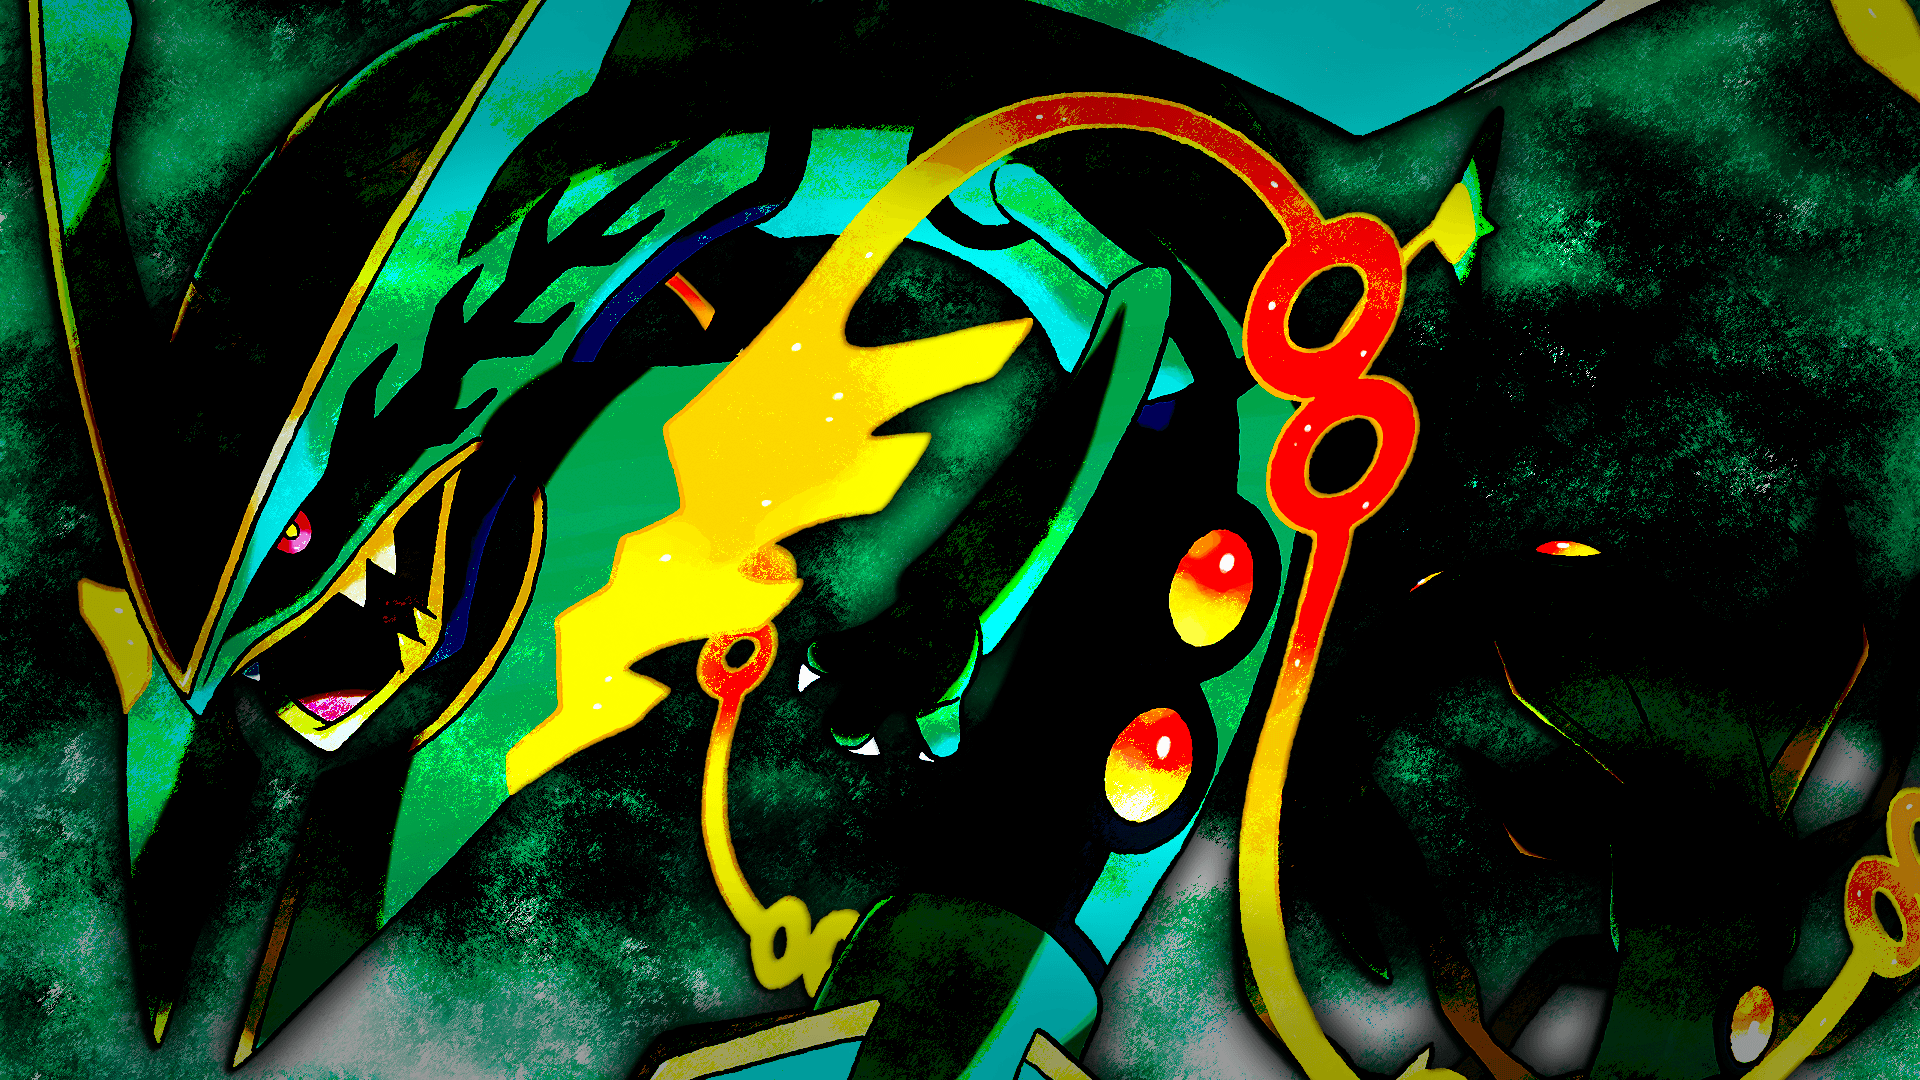 rayquaza hd wallpapers wallpaper cave